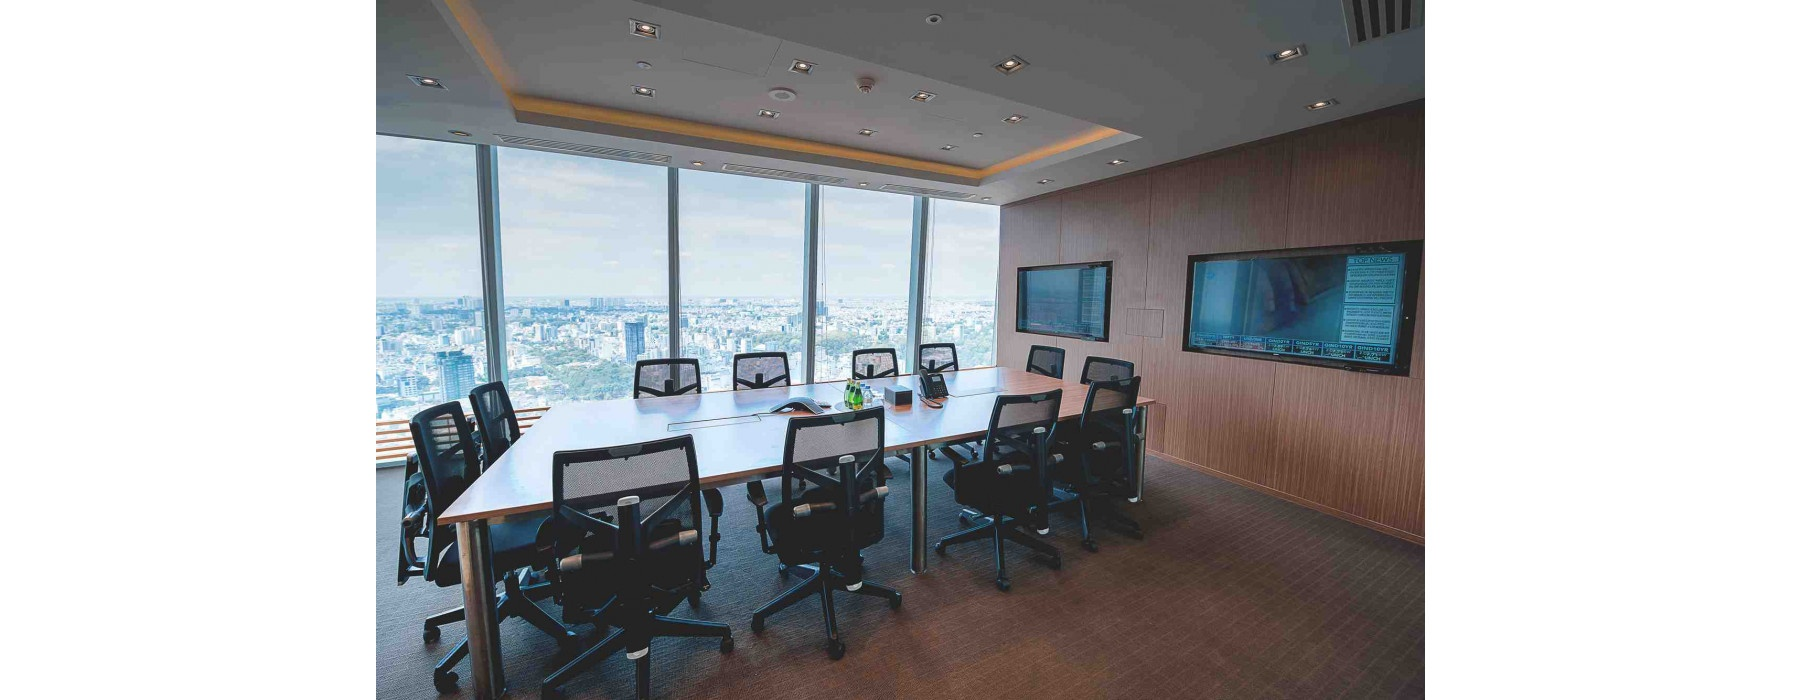 HCMC - Bitexco Financial Tower - Video conferencing